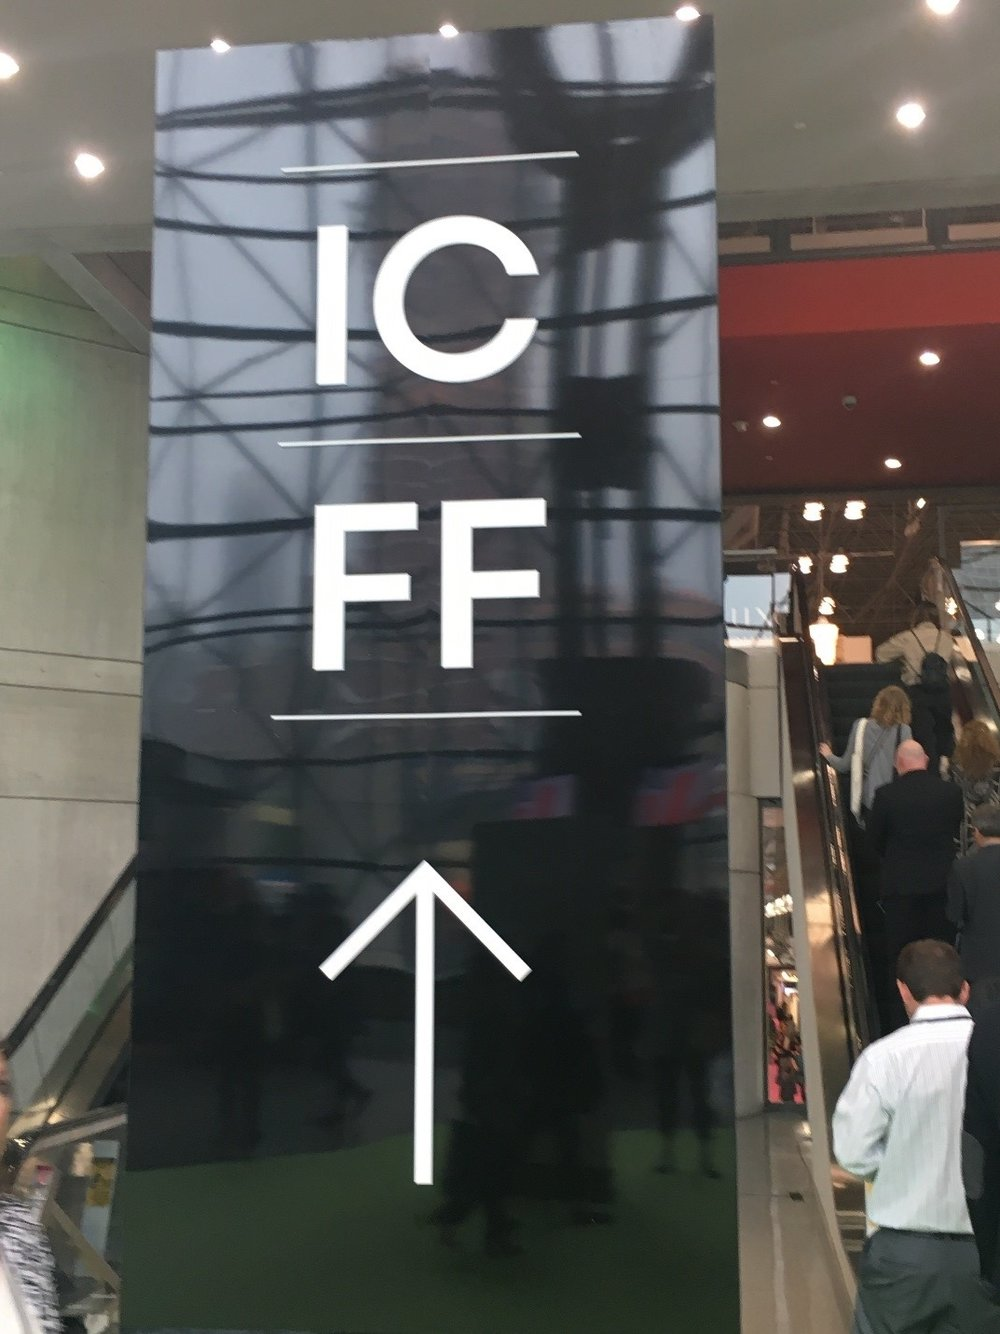 ICFF is North America's premier trade show for contemporary design in 11 categories from furniture to materials to kitchen and bath to fabricators.  The 2017 show hosted more than 700 exhibitors from more than 30 countries.  Some of our favorite finds follow: